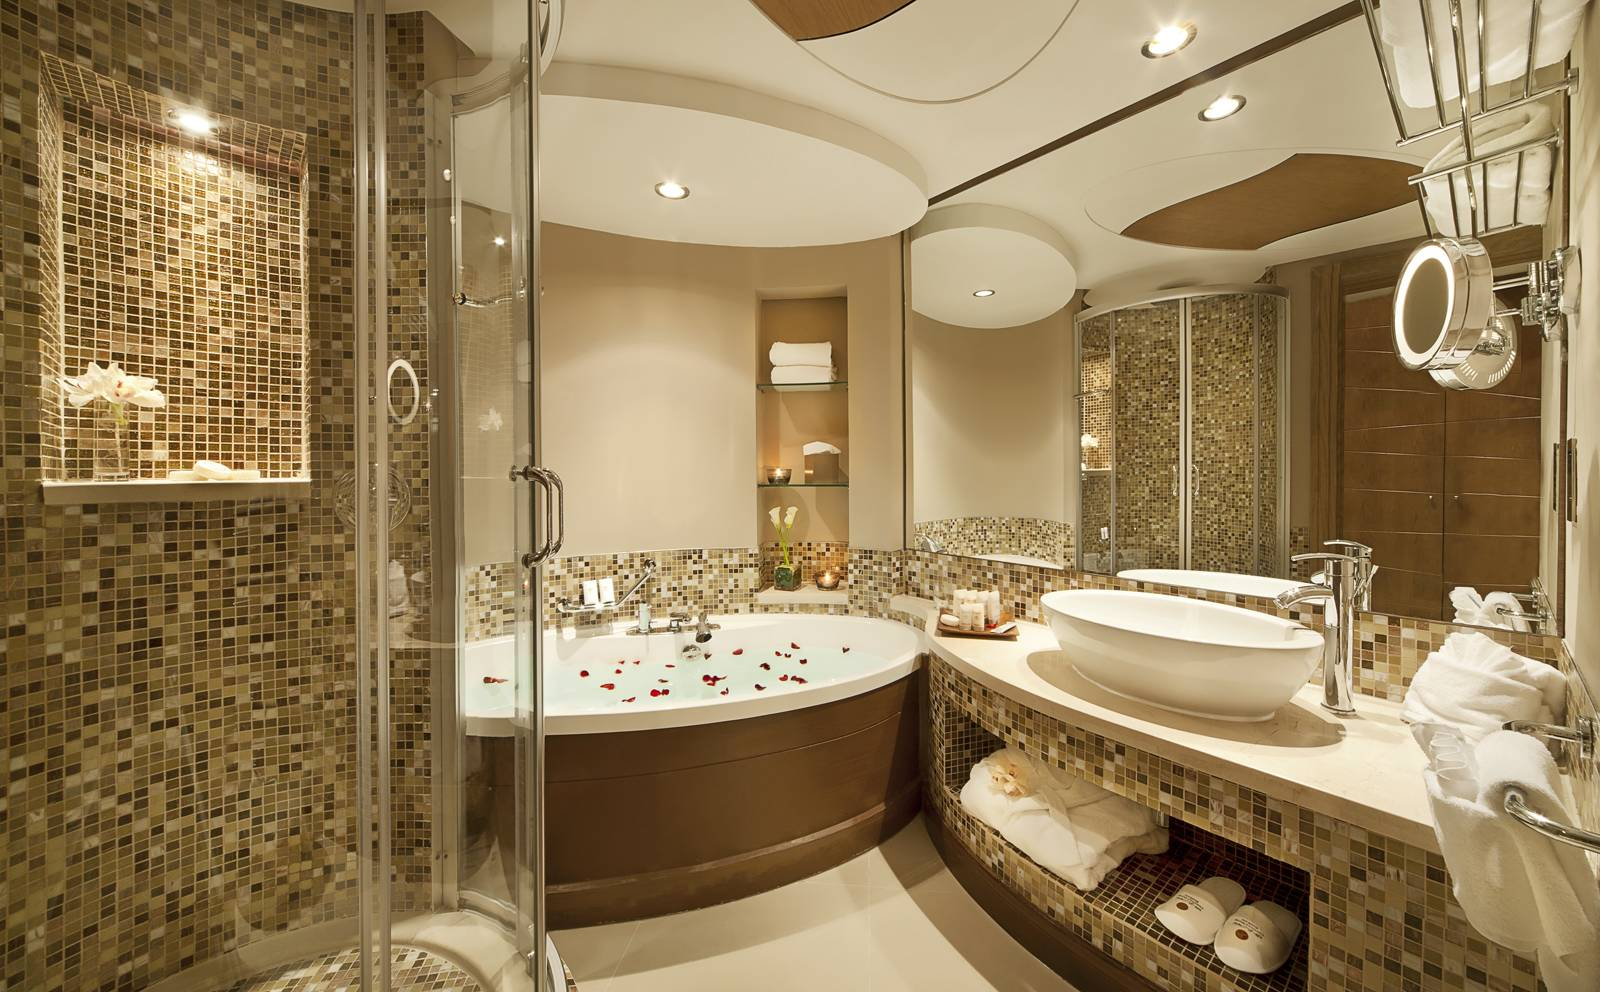 10 Of The Worlds Most Luxurious Bathrooms – Terrys Fabrics ...